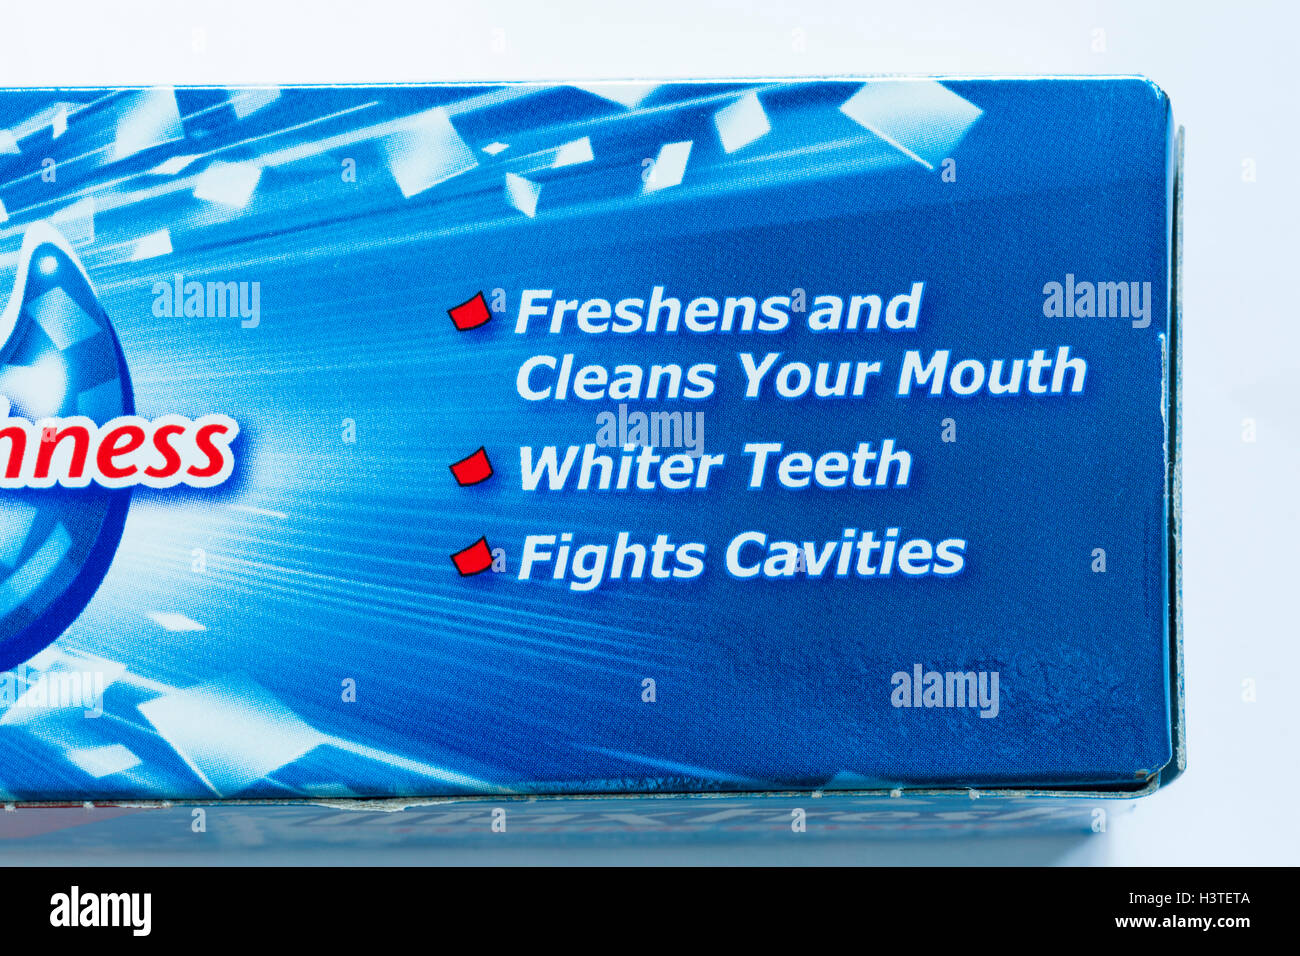 Information on box of Colgate fluoride toothpaste MaxFresh with cooling crystals cool mint - Stock Image